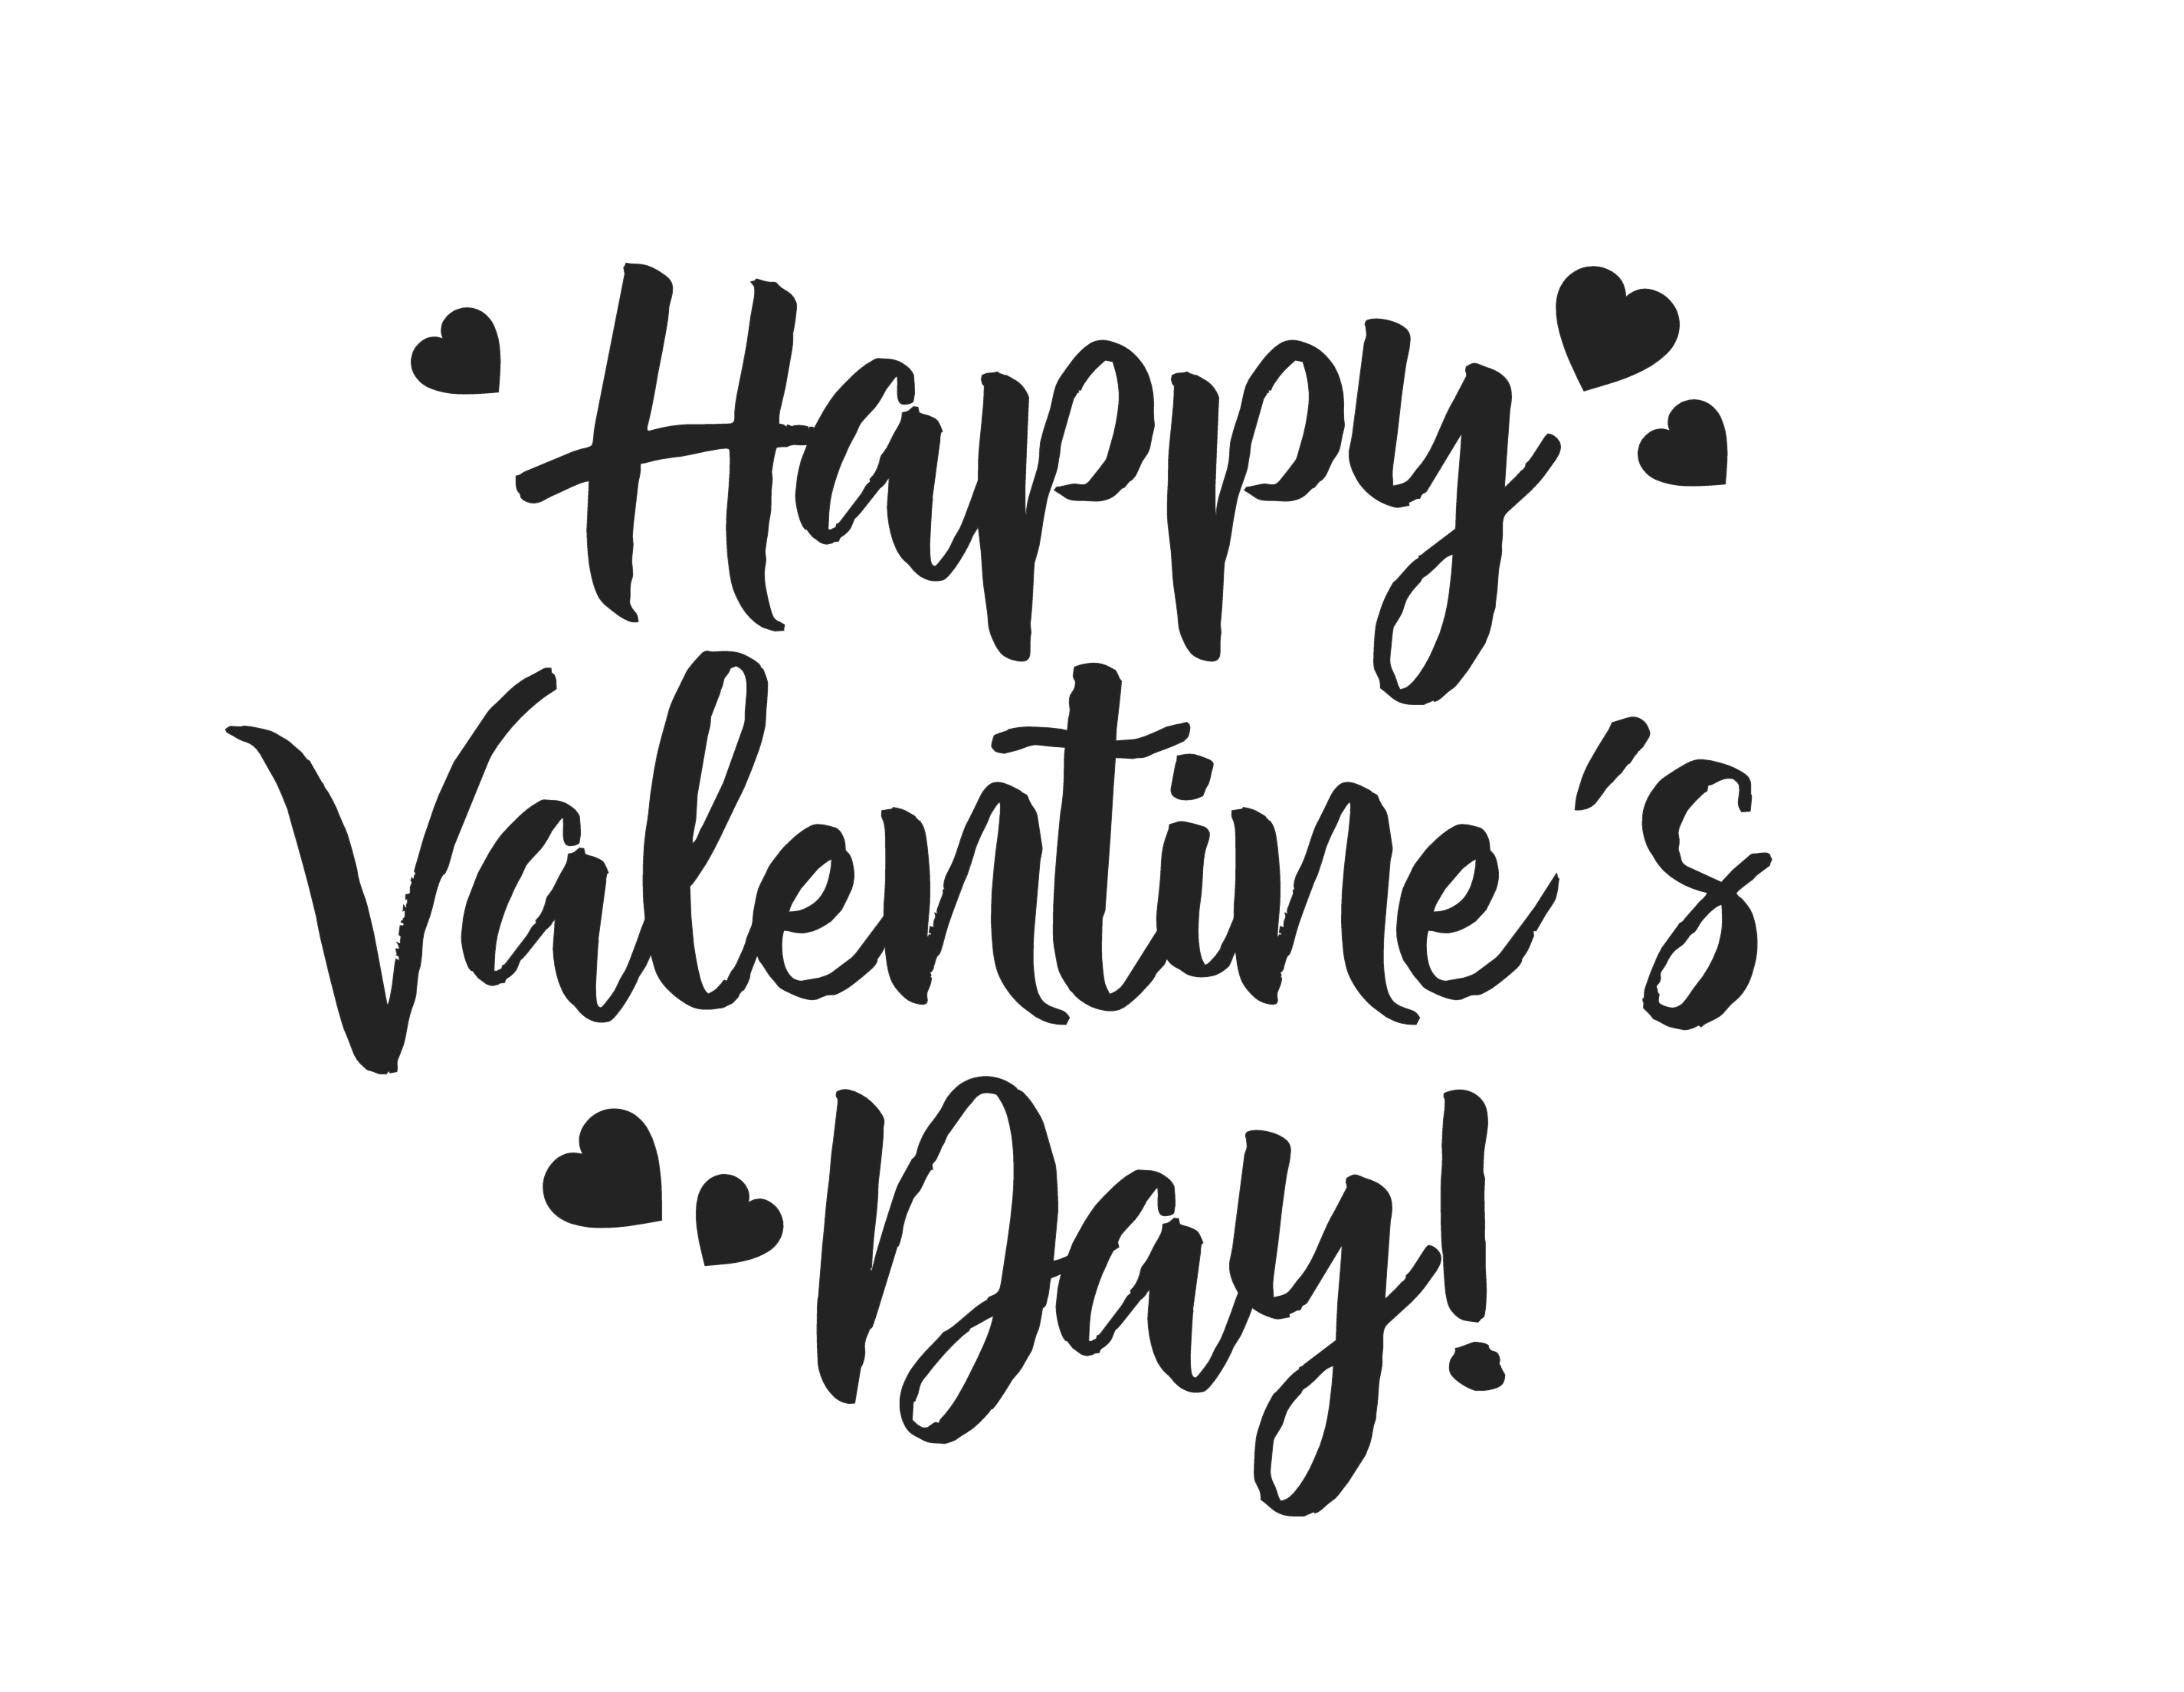 Happy s day cutting. Svg boxes valentine clip art transparent library